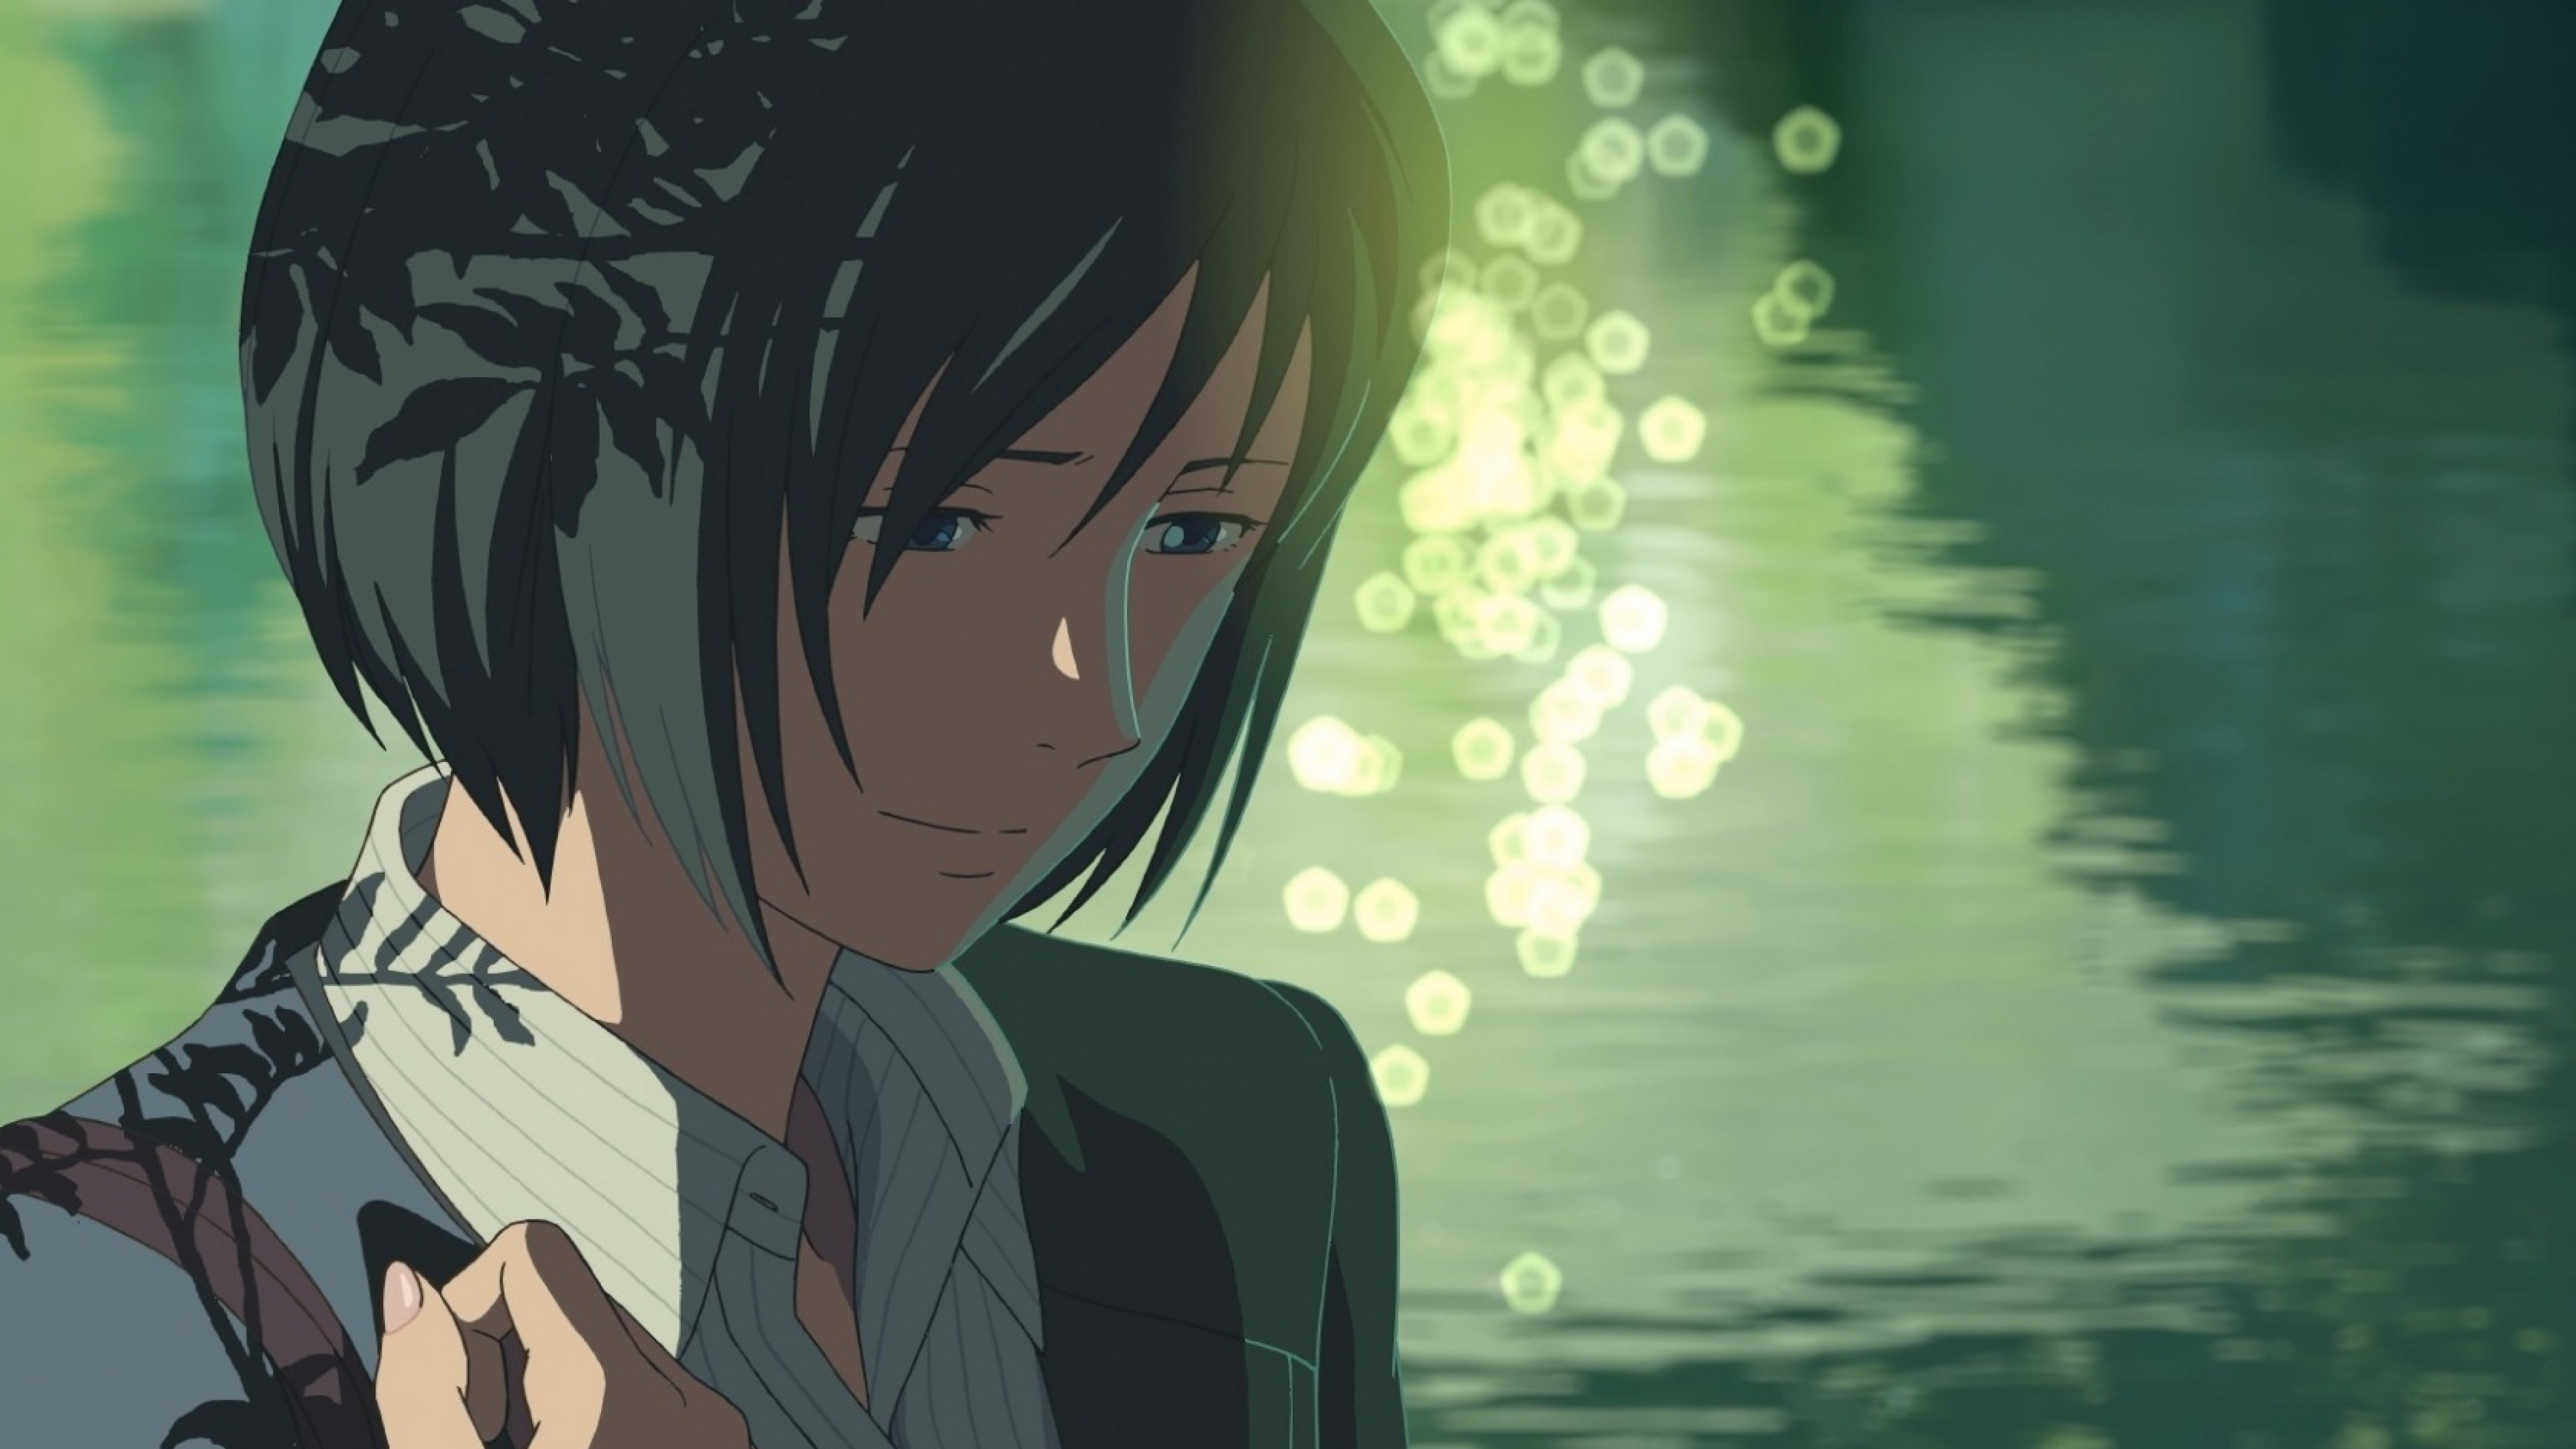 3840x2160 Preview wallpaper kotonoha no niwa, the garden of words, makoto shinkai